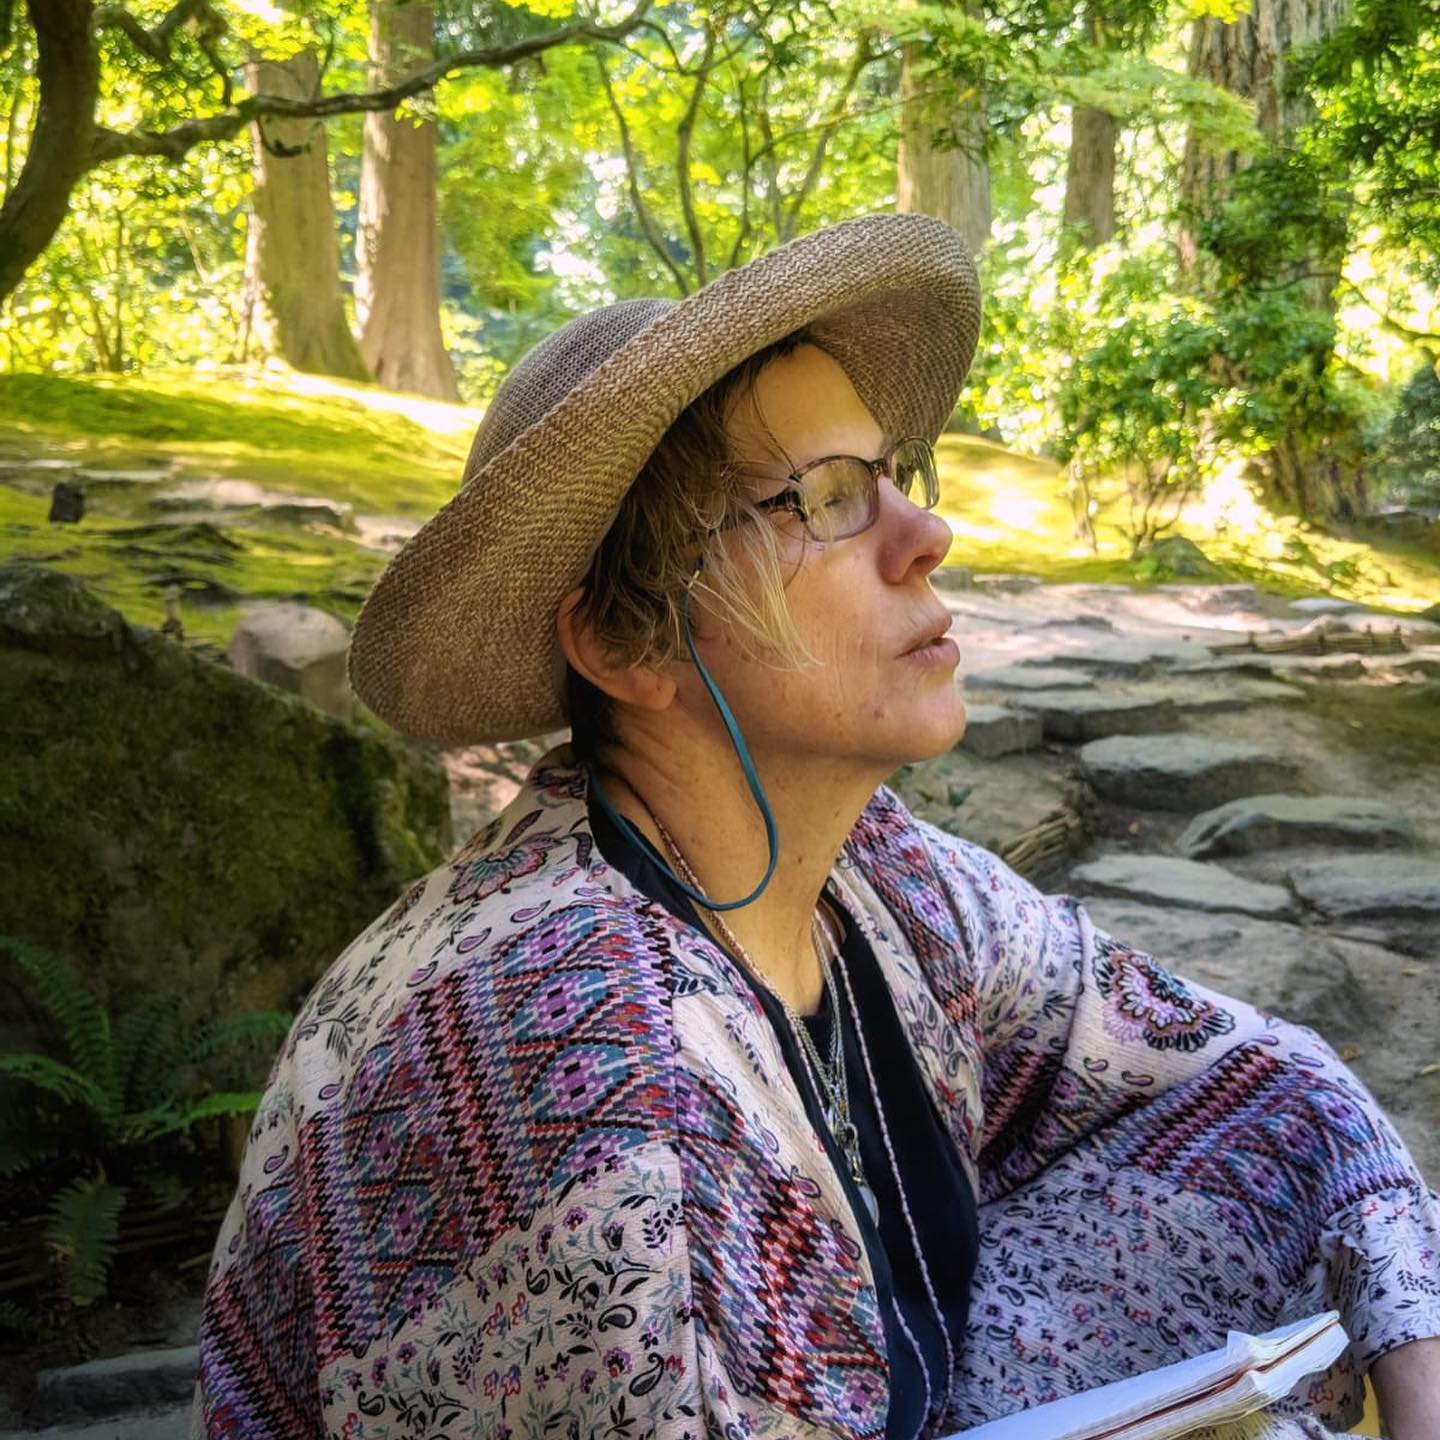 Contemplating at the Japanese Gardens in Portland, Oregon. photo by David Bardes